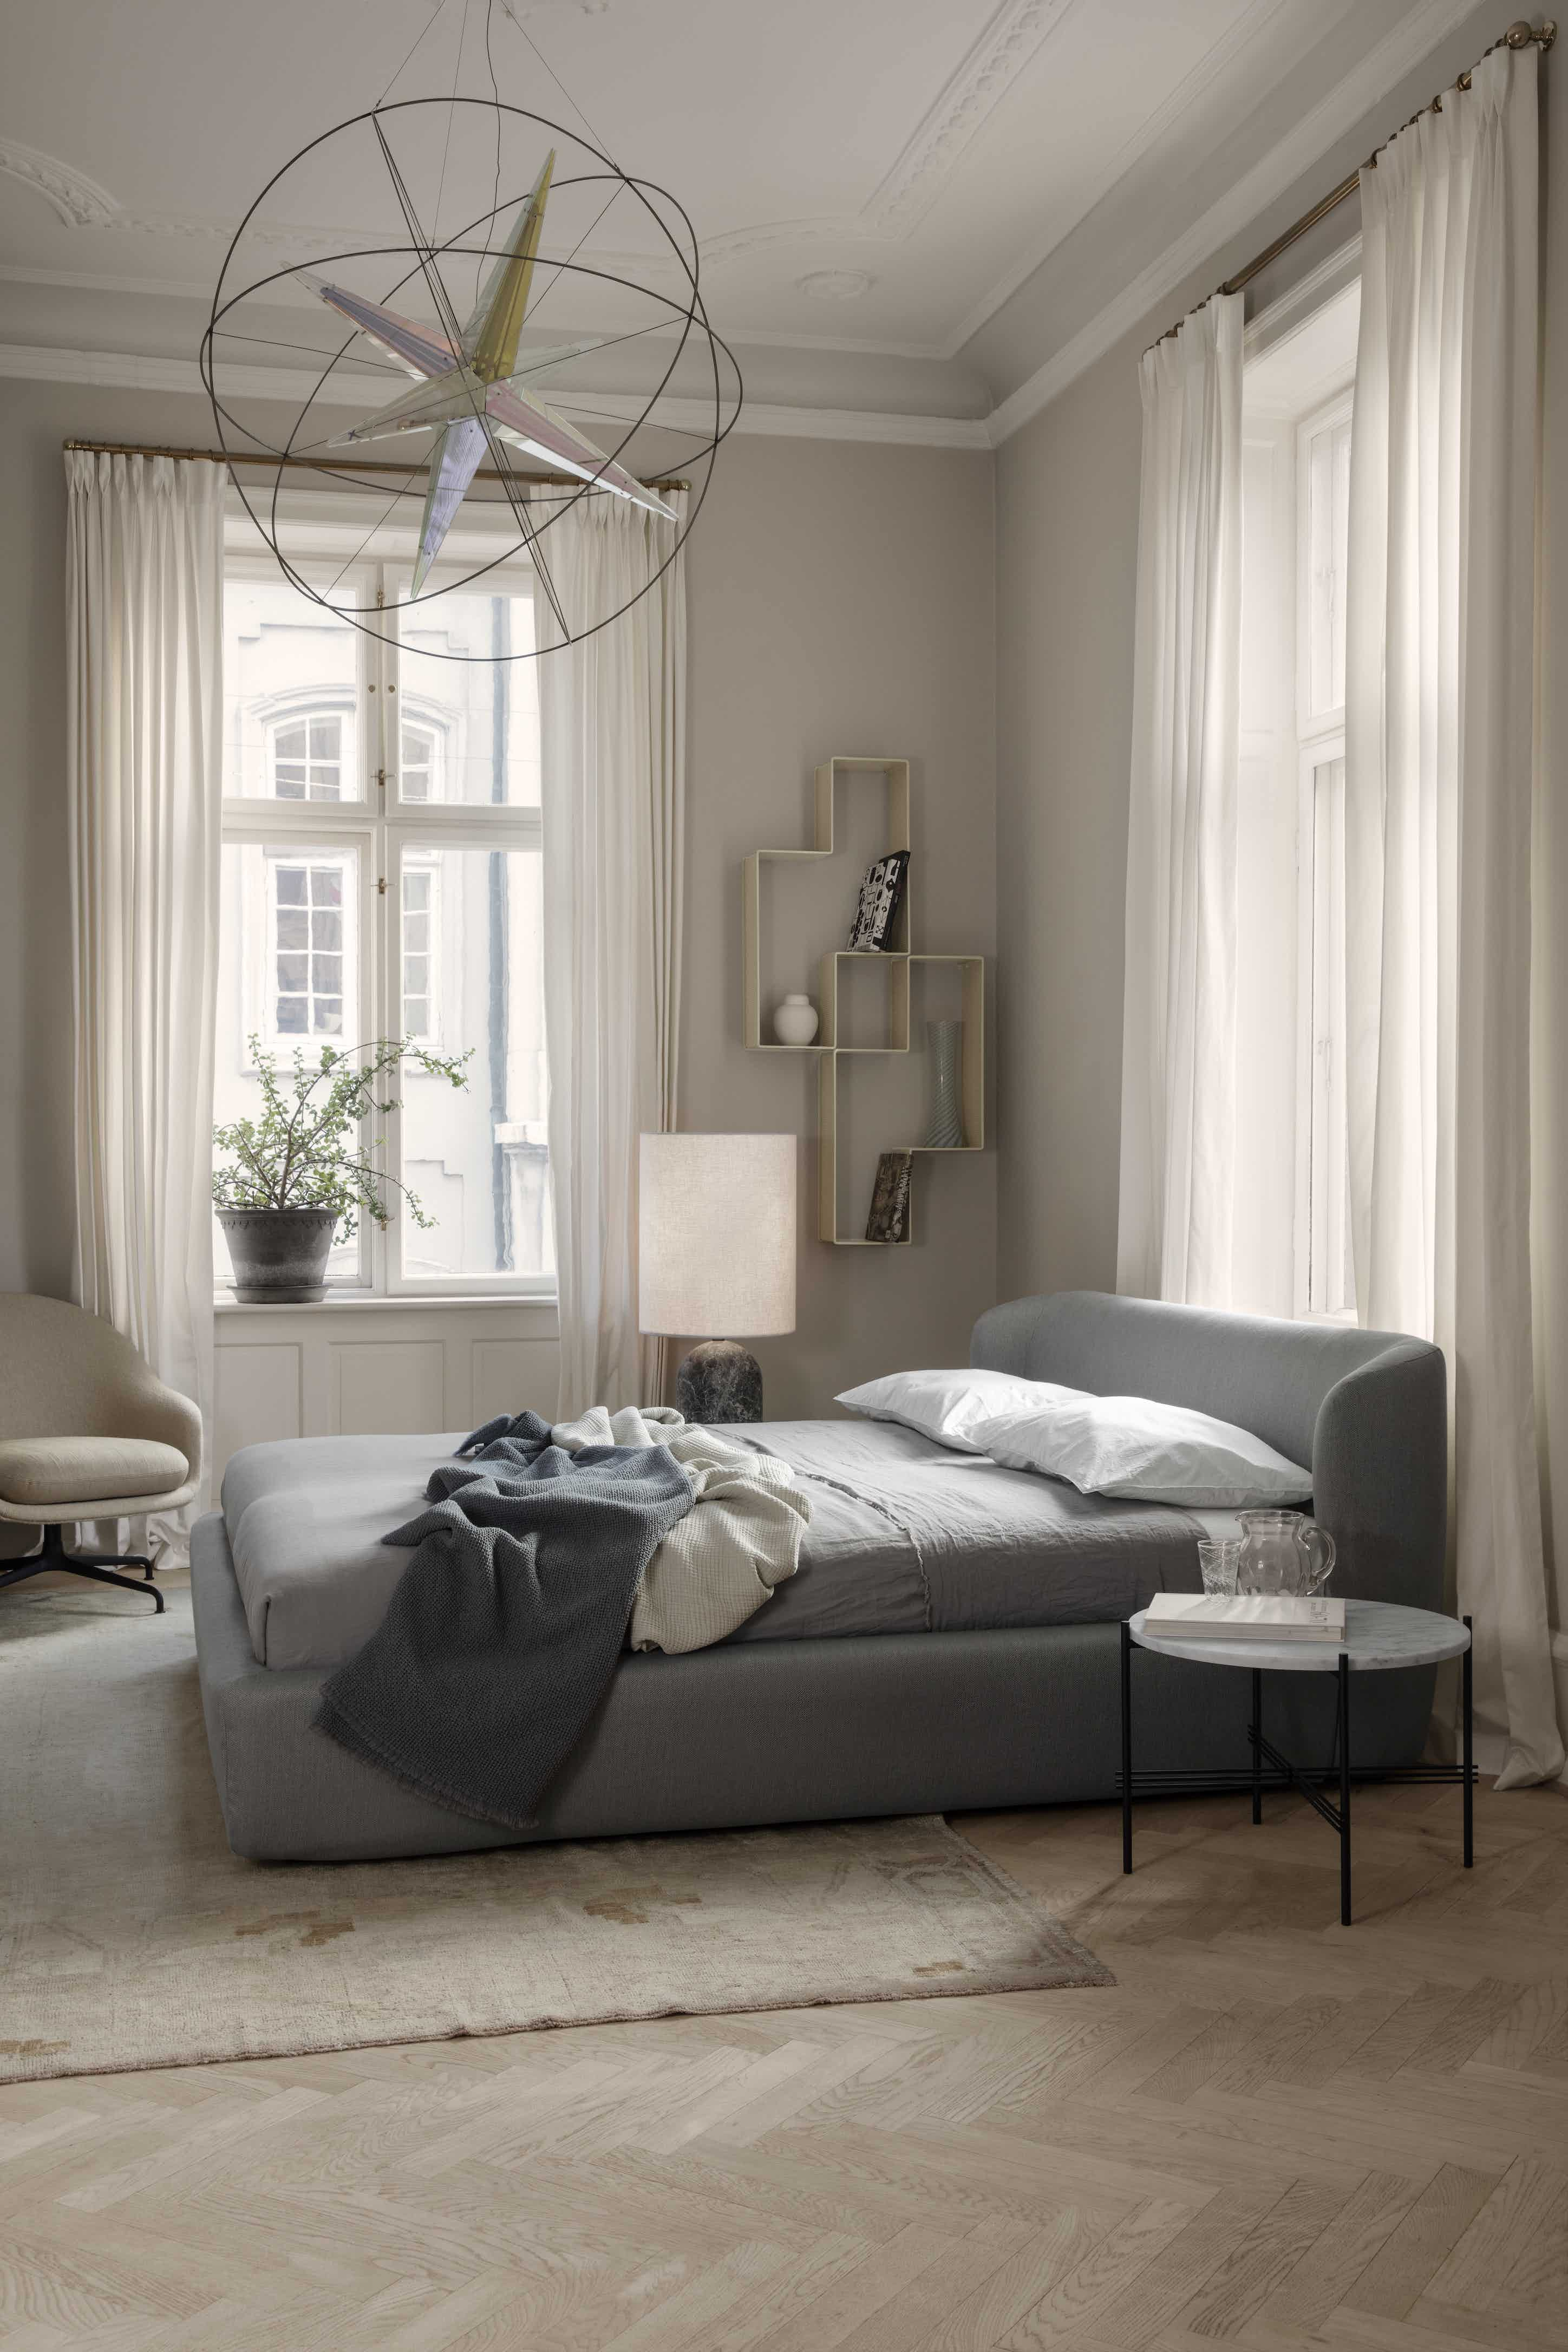 Gubi-stay-bed-insitu-haute-living